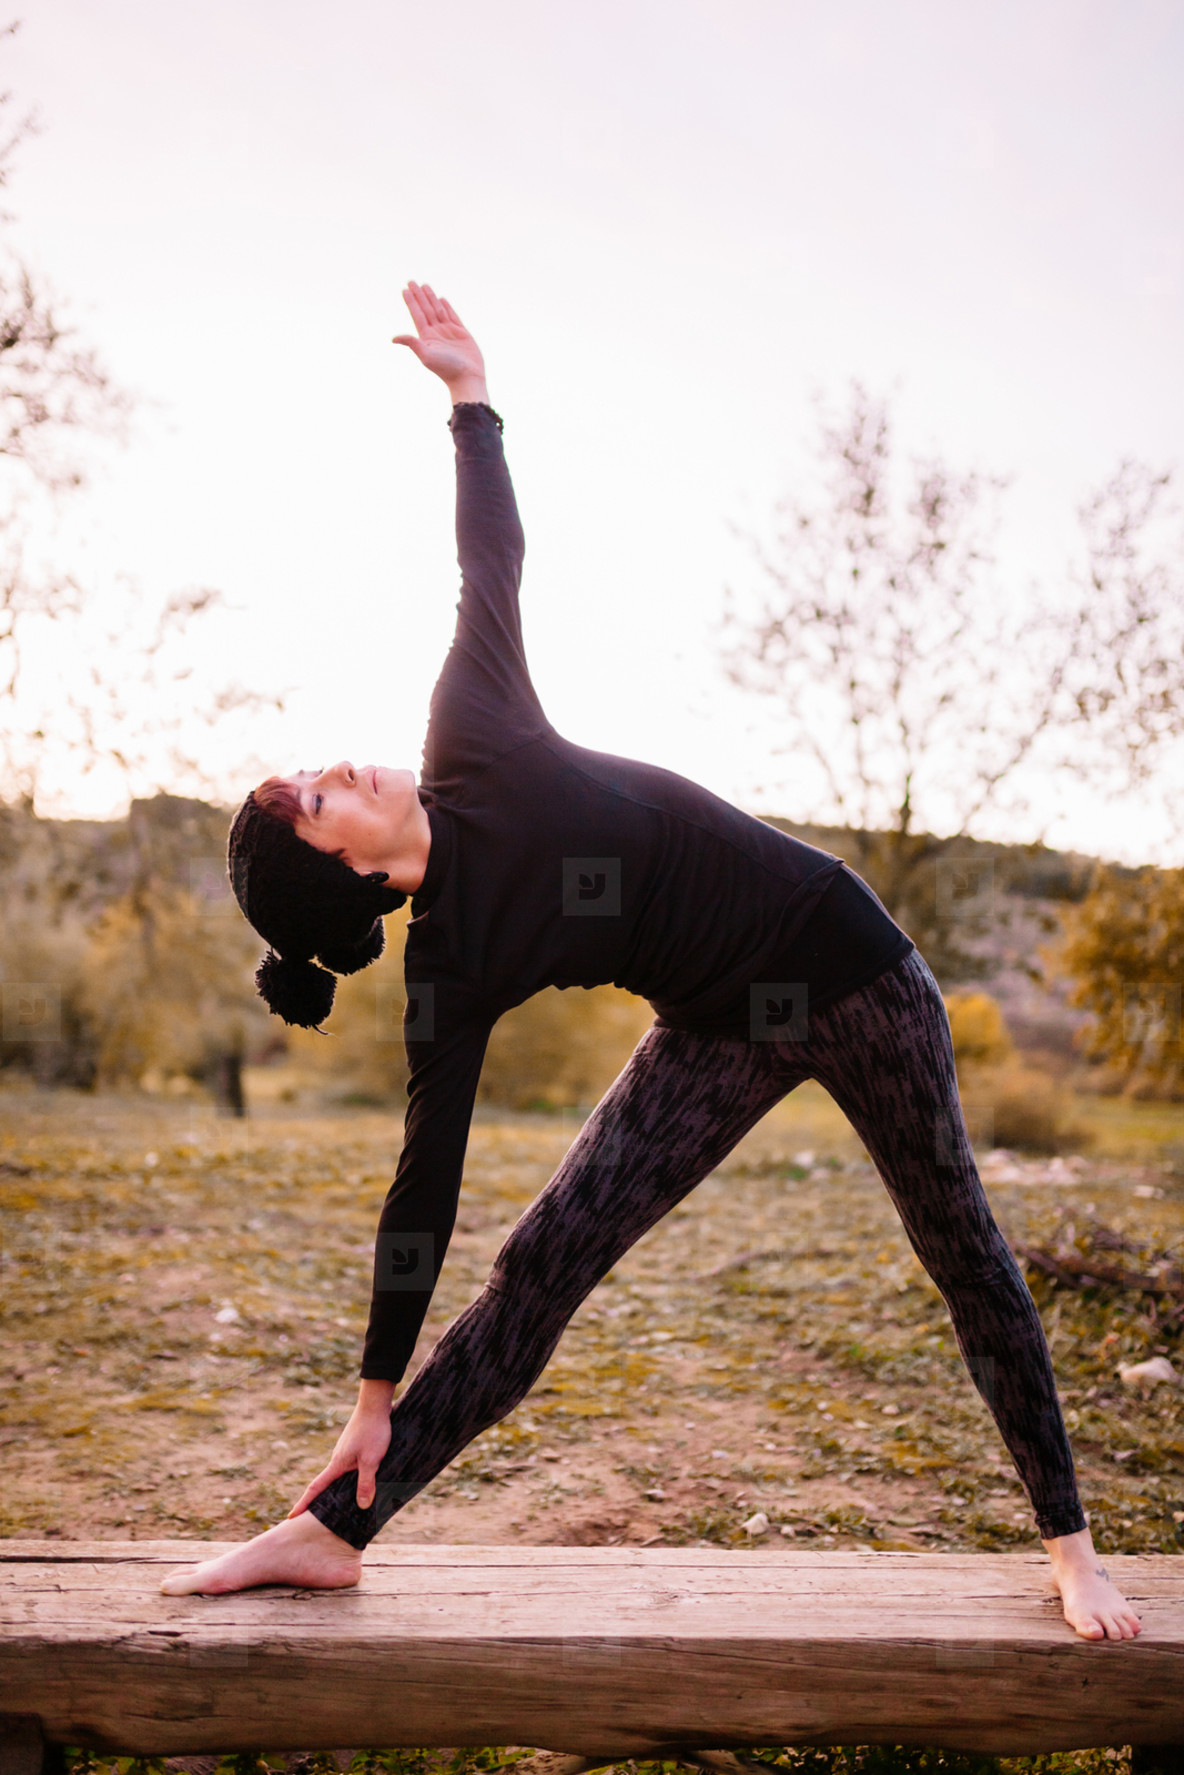 Woman practicing yoga and stretching on the park bench